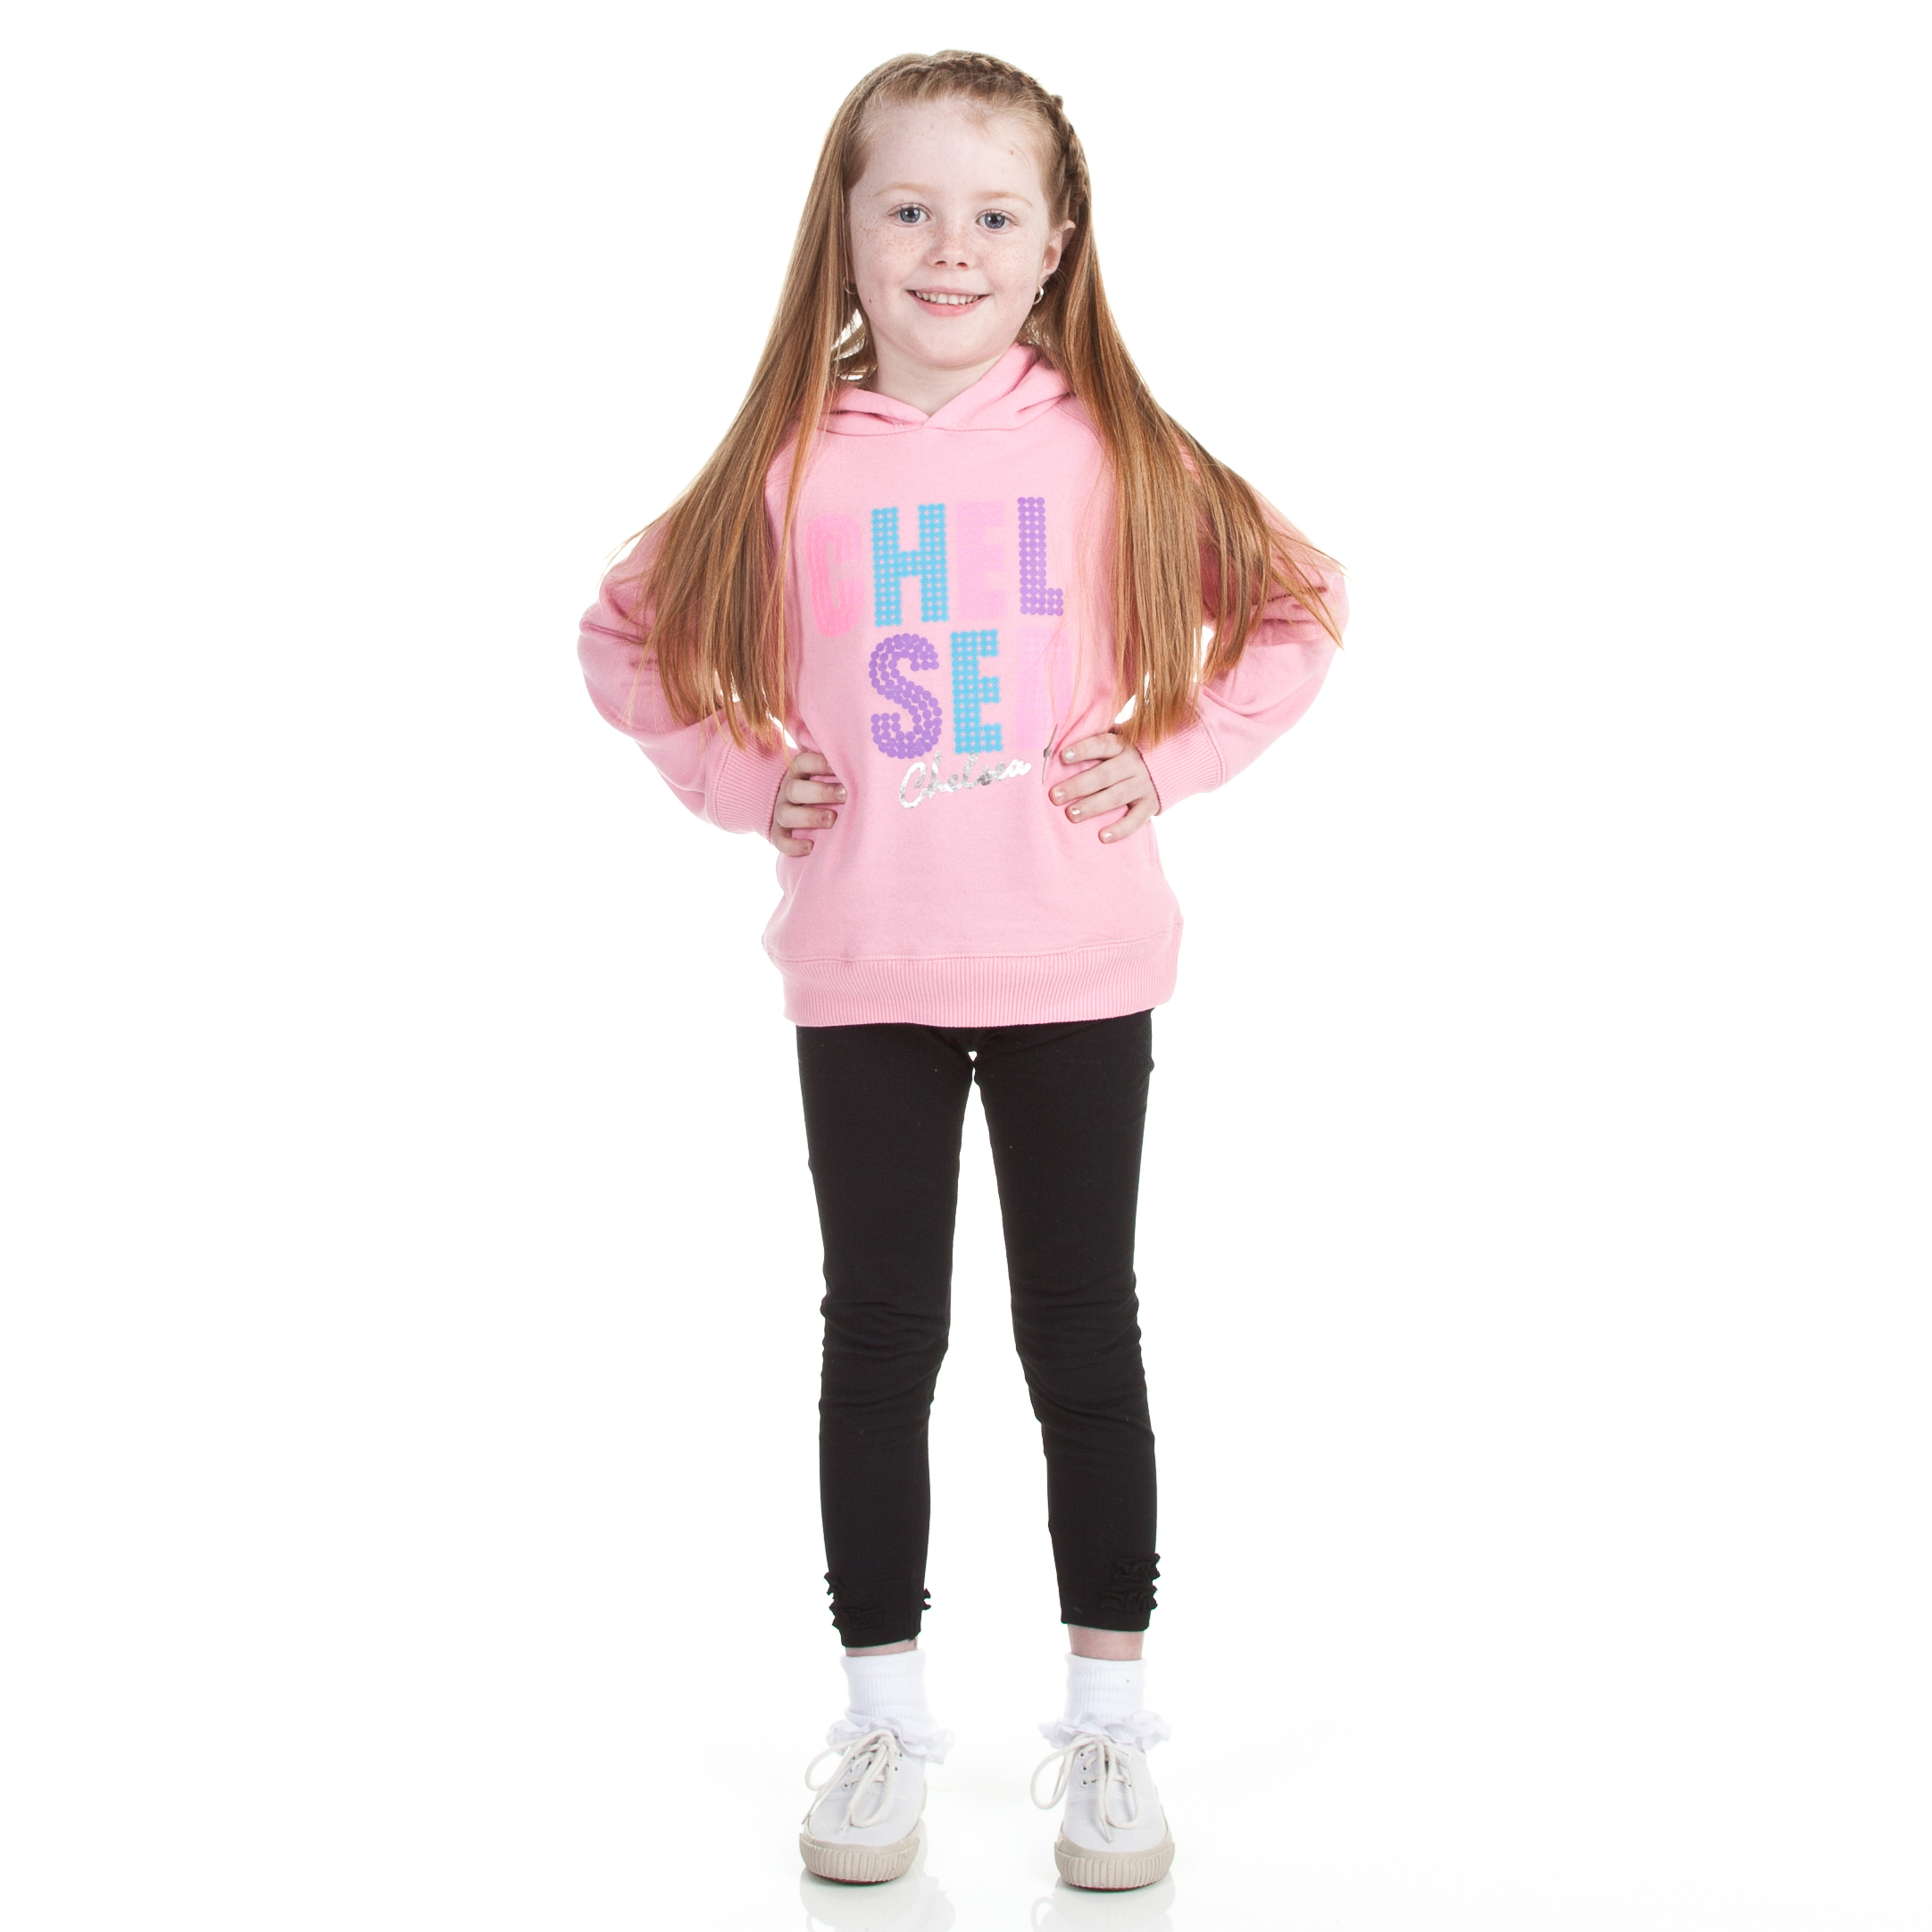 Chelsea Love Graphic Hoody - Sherbet Pink - Infant Girls